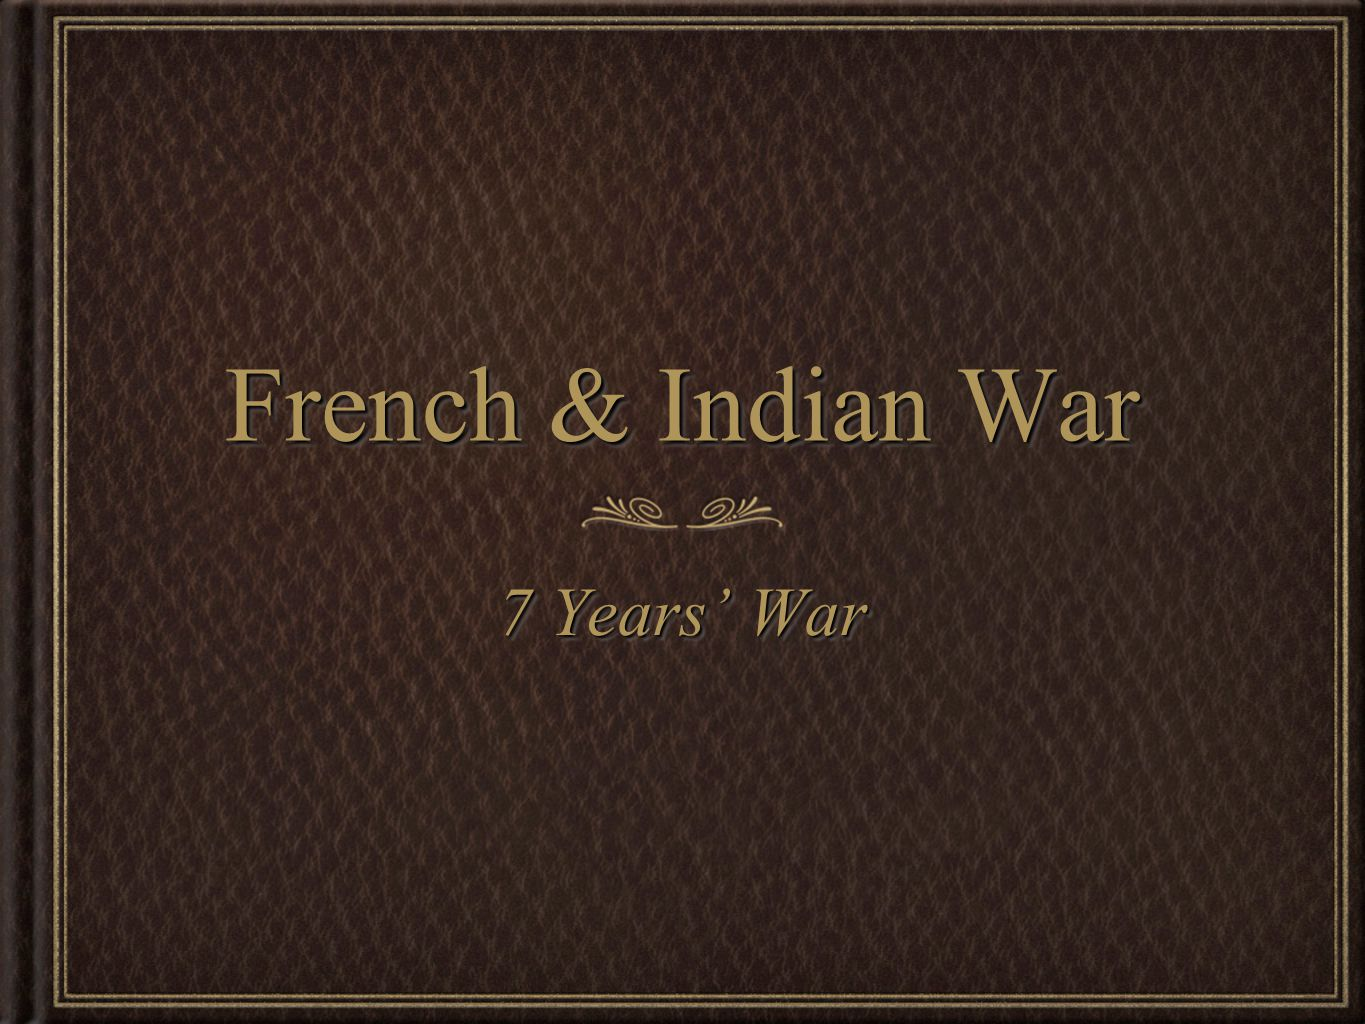 French & Indian War 7 Years' War